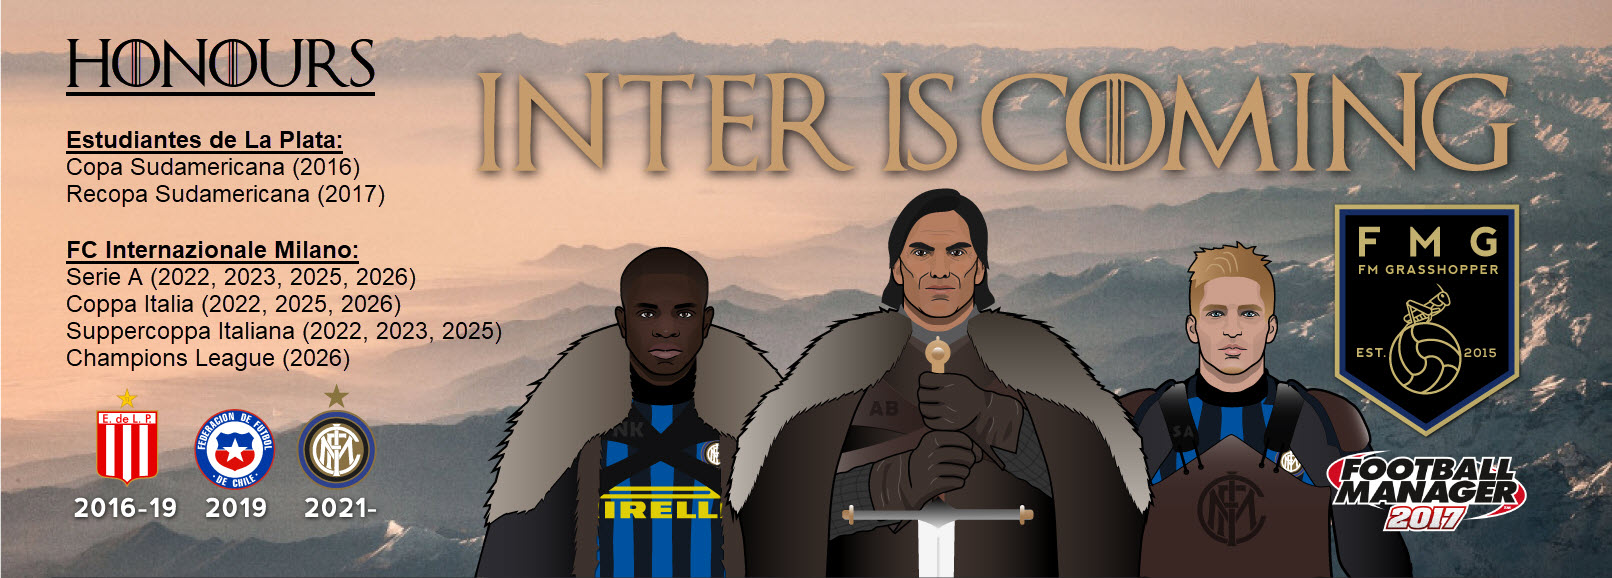 Inter is here.